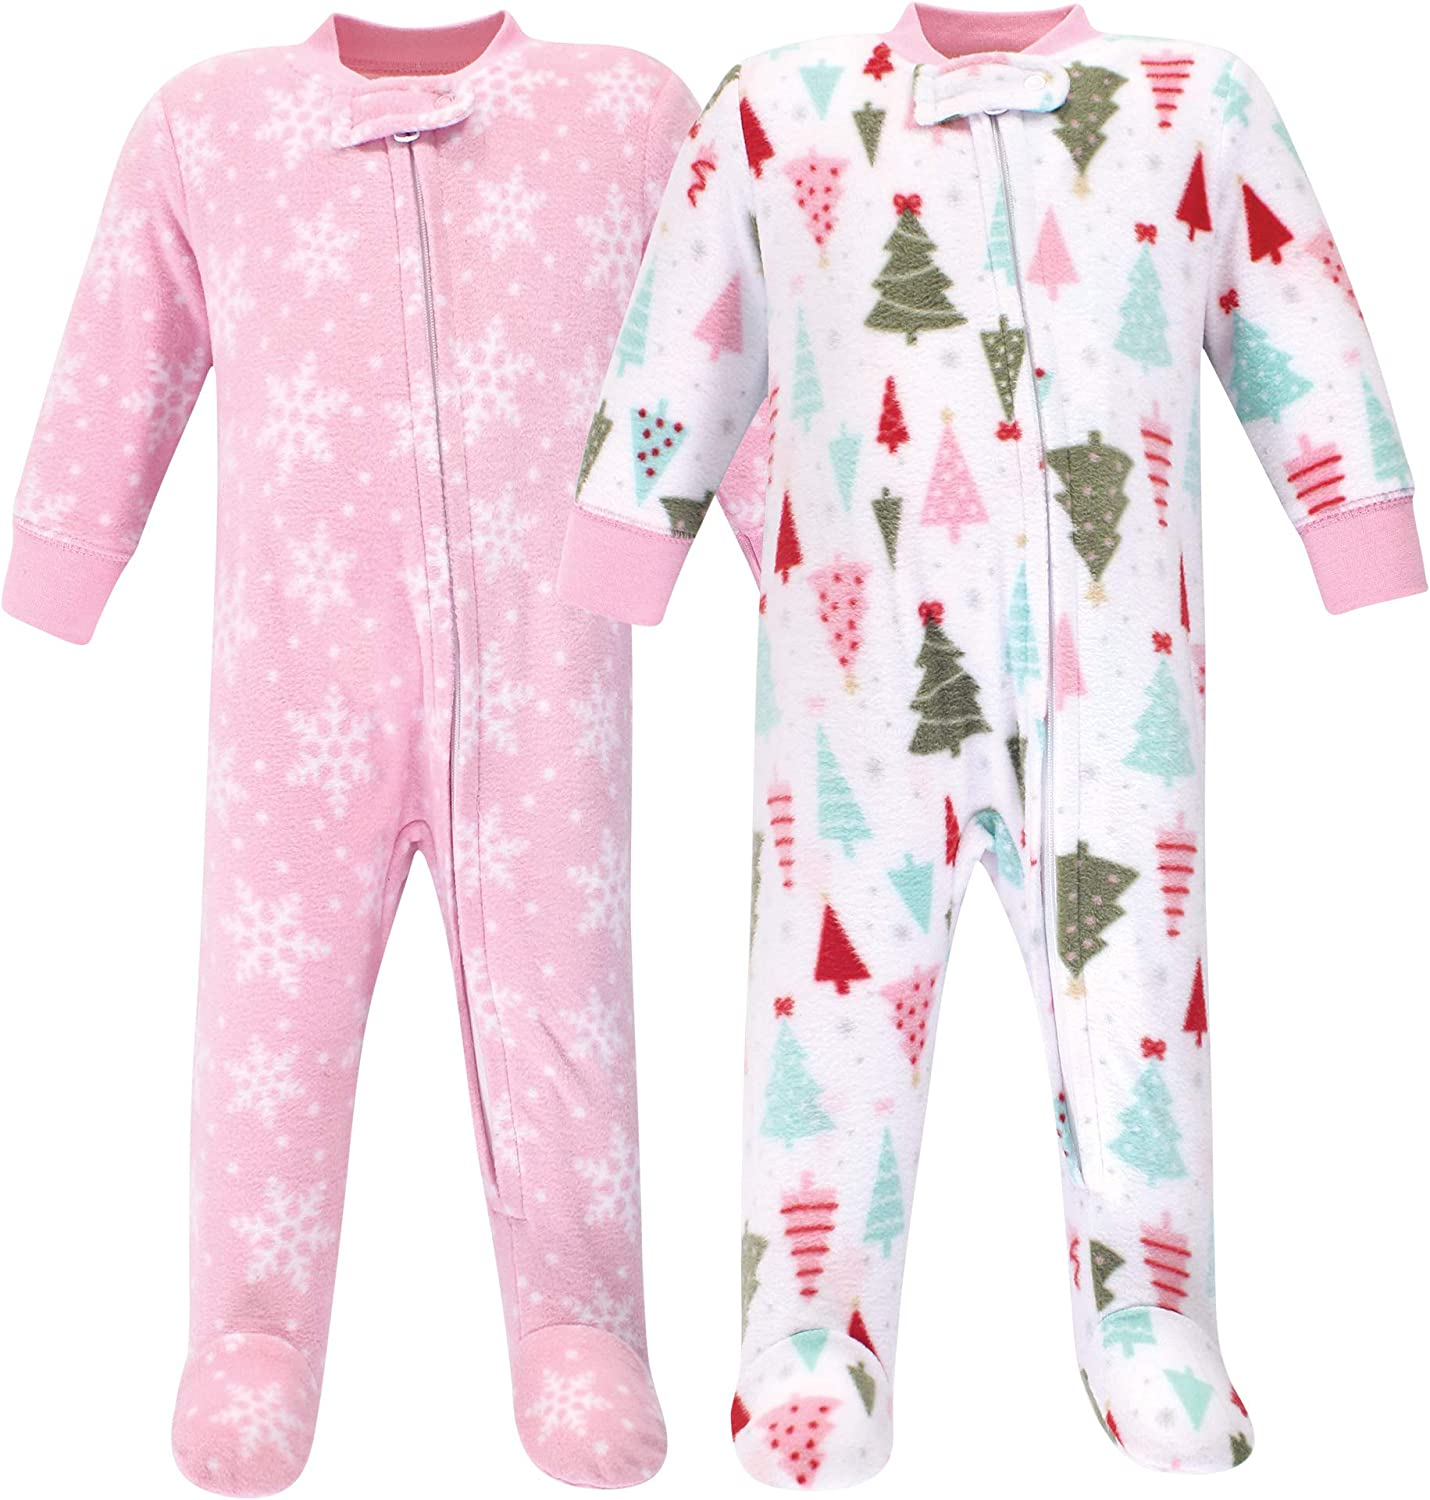 Essentials Girls Infant 2-Pack Sleep and Play